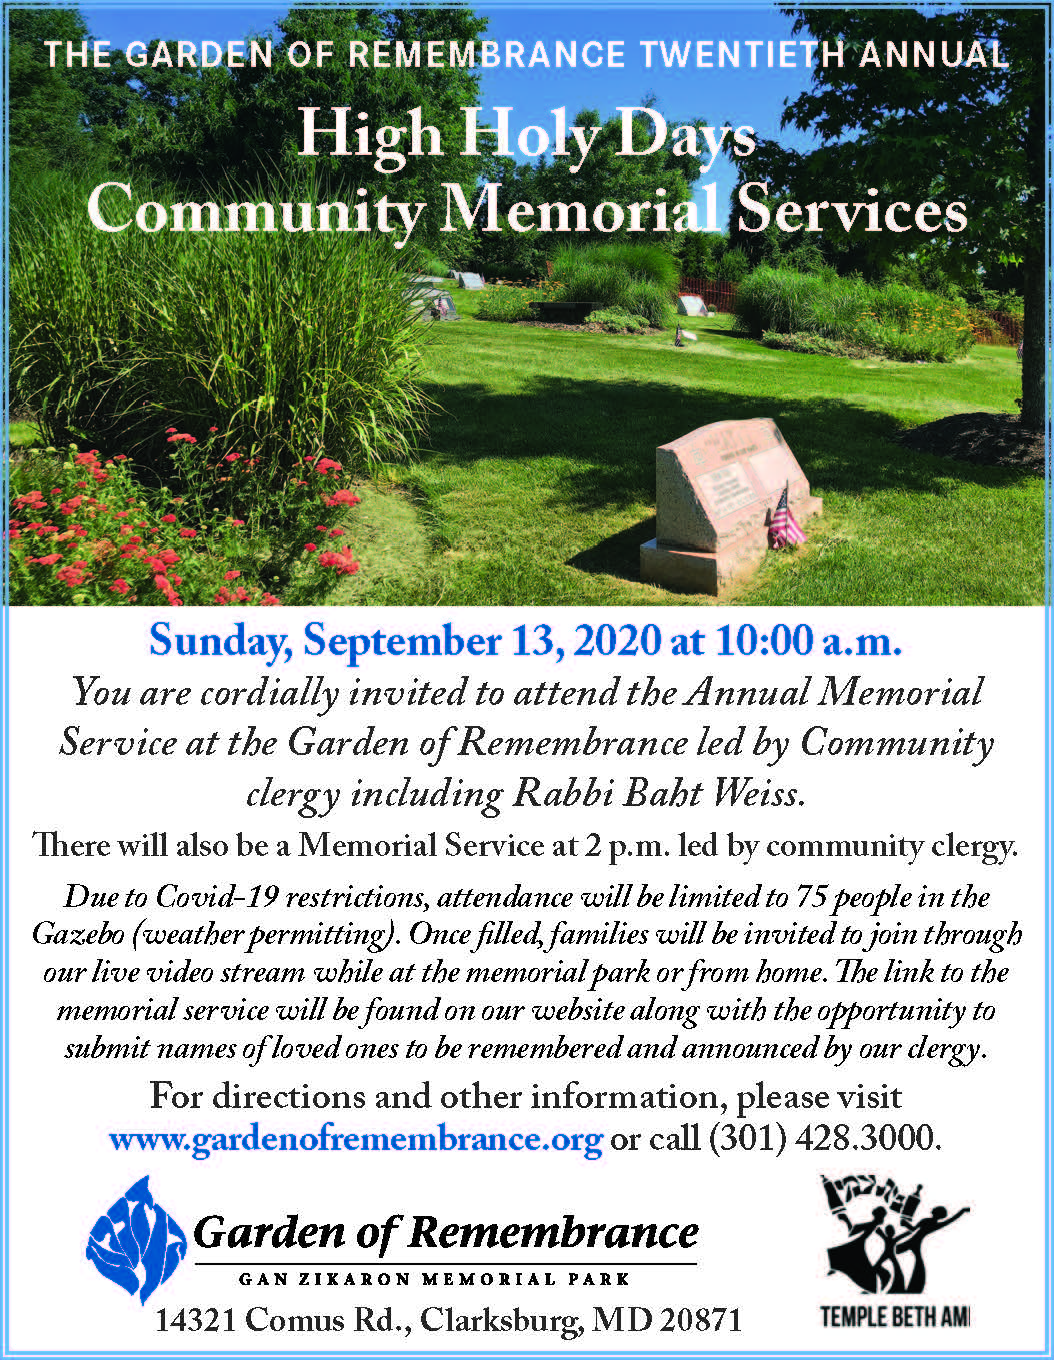 Garden of Remembrance Memorial Park 20th Annual Memorial Services<br/>Sun. Sept 13 (10:00 am & 2:00 pm)